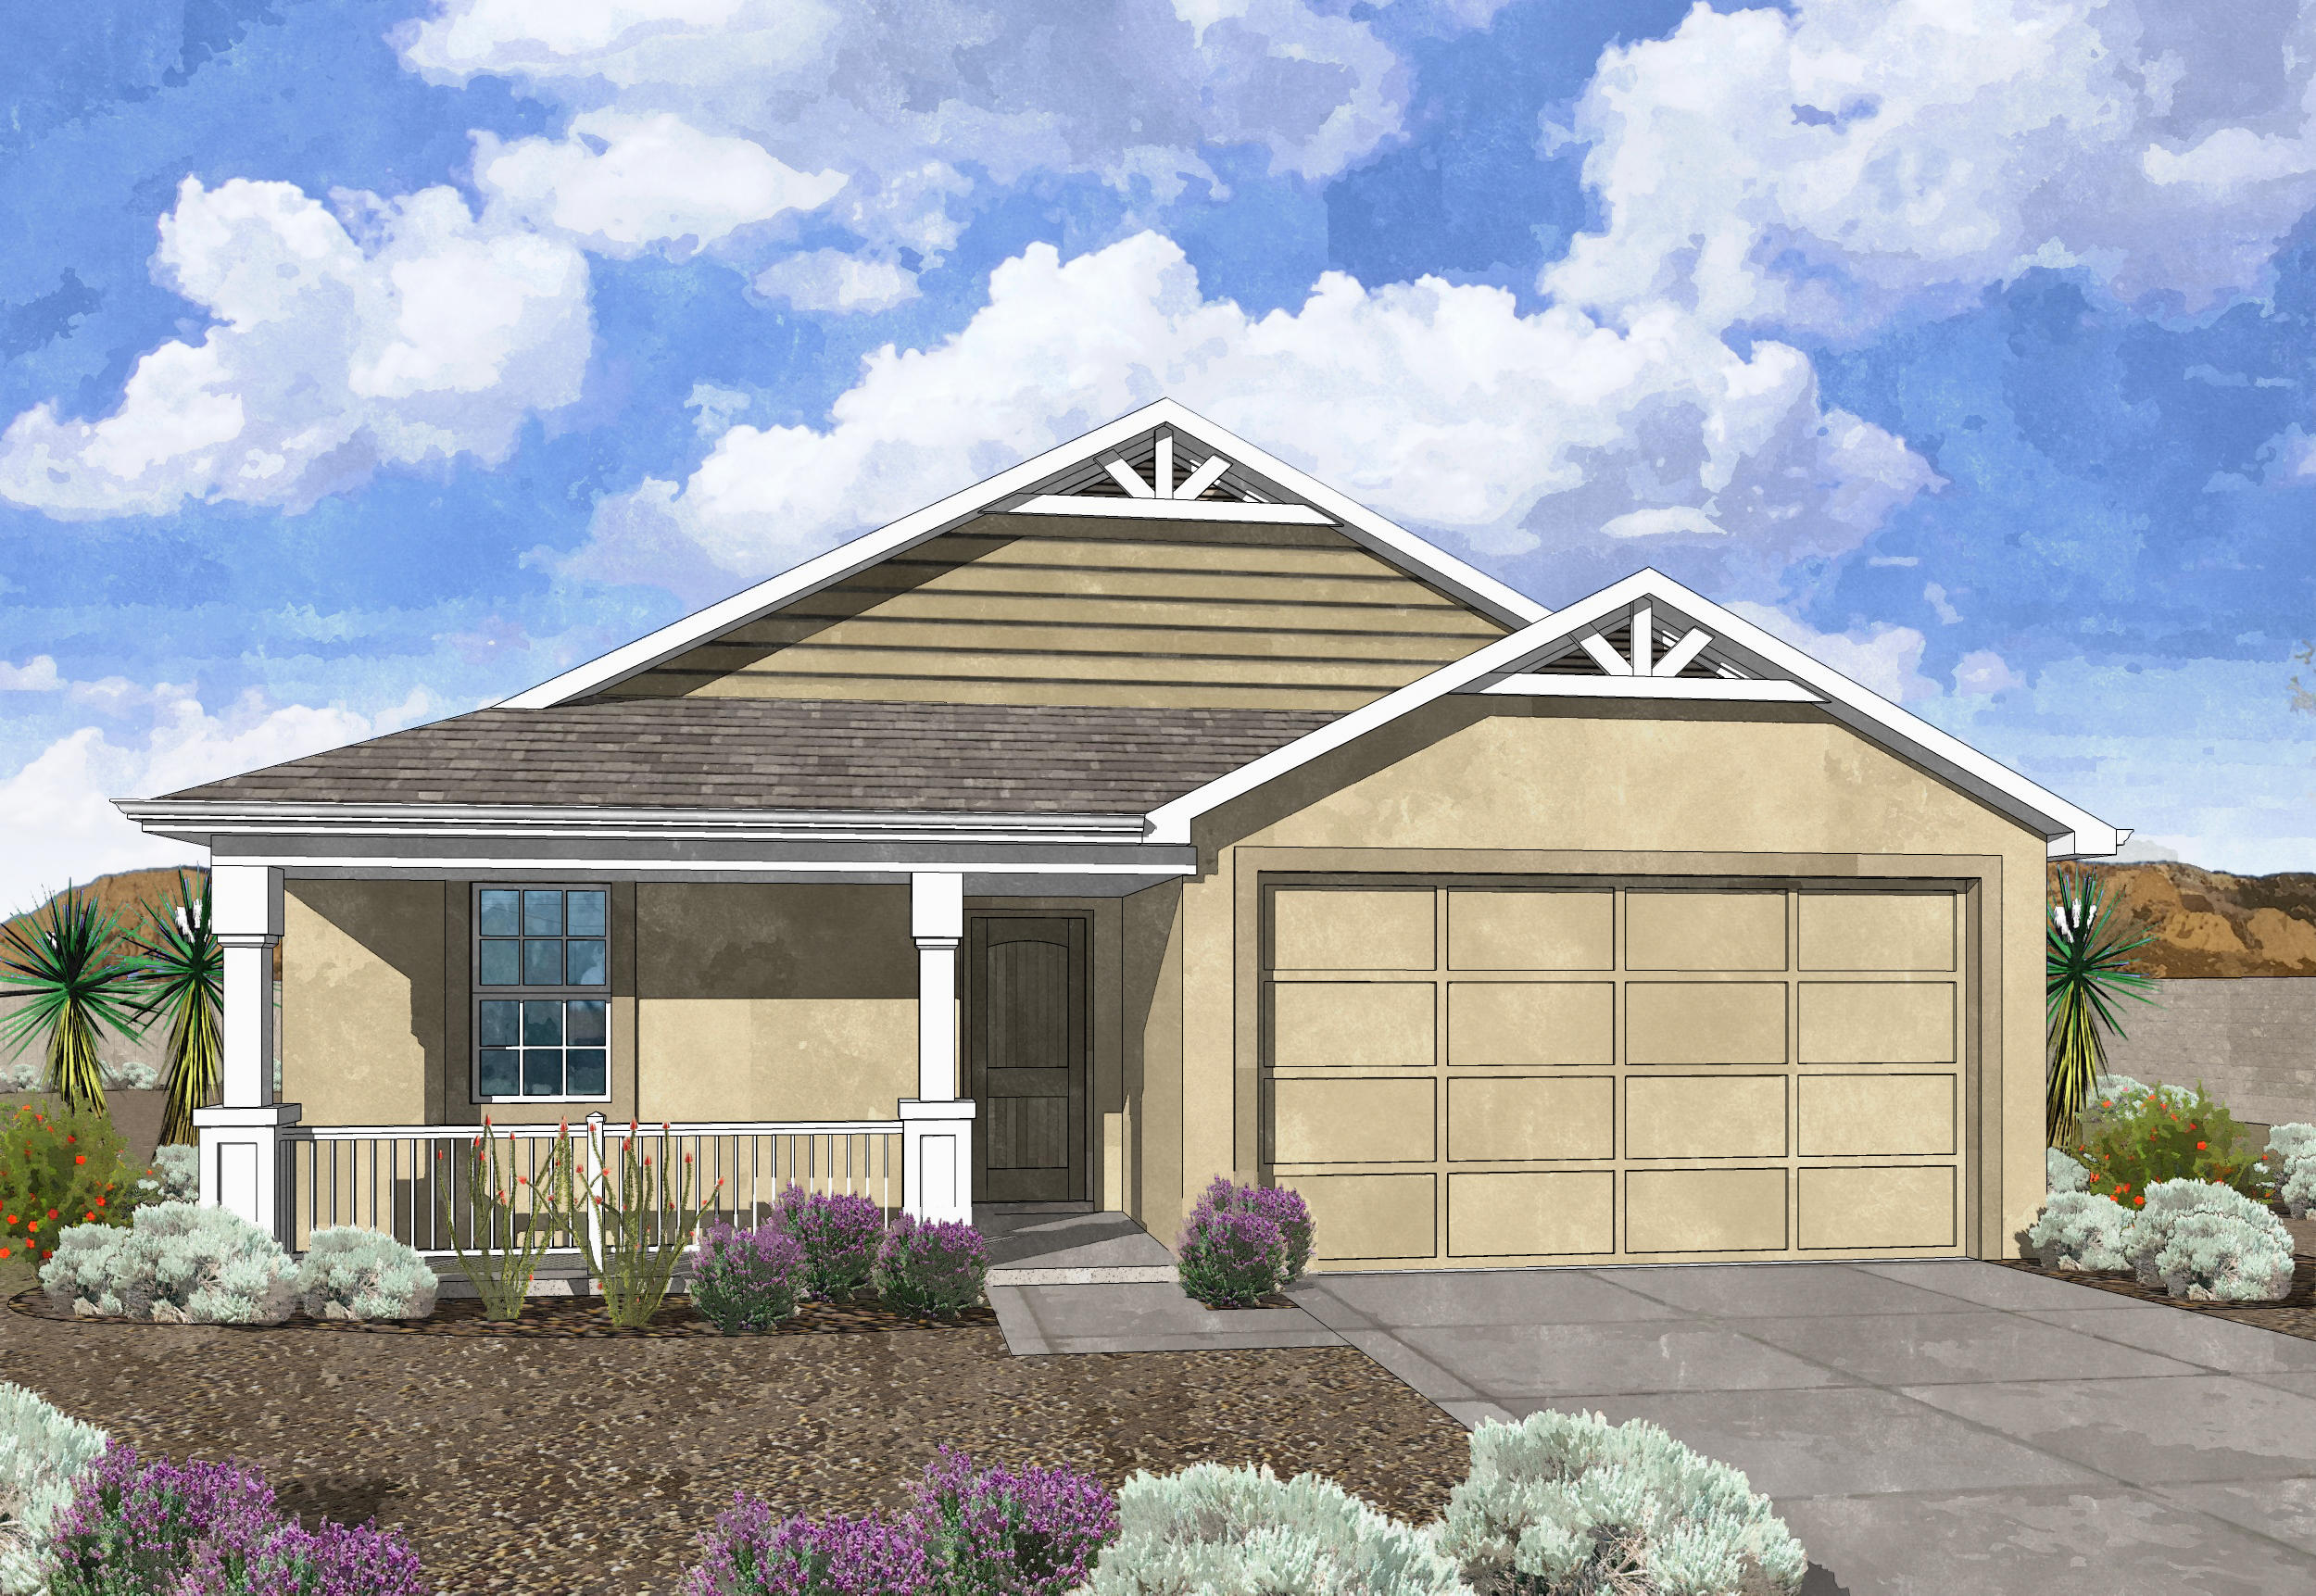 Westway Homes Introduces the Agate in De La Reina! This is Belen's newest community and offers 5 great floor plans to accommodate all needs. The Agate is a 3 bedroom, 2 bath open floor plan. Come be a part of Belen's newest community. Home will be complete and ready to move in to in November 2020!